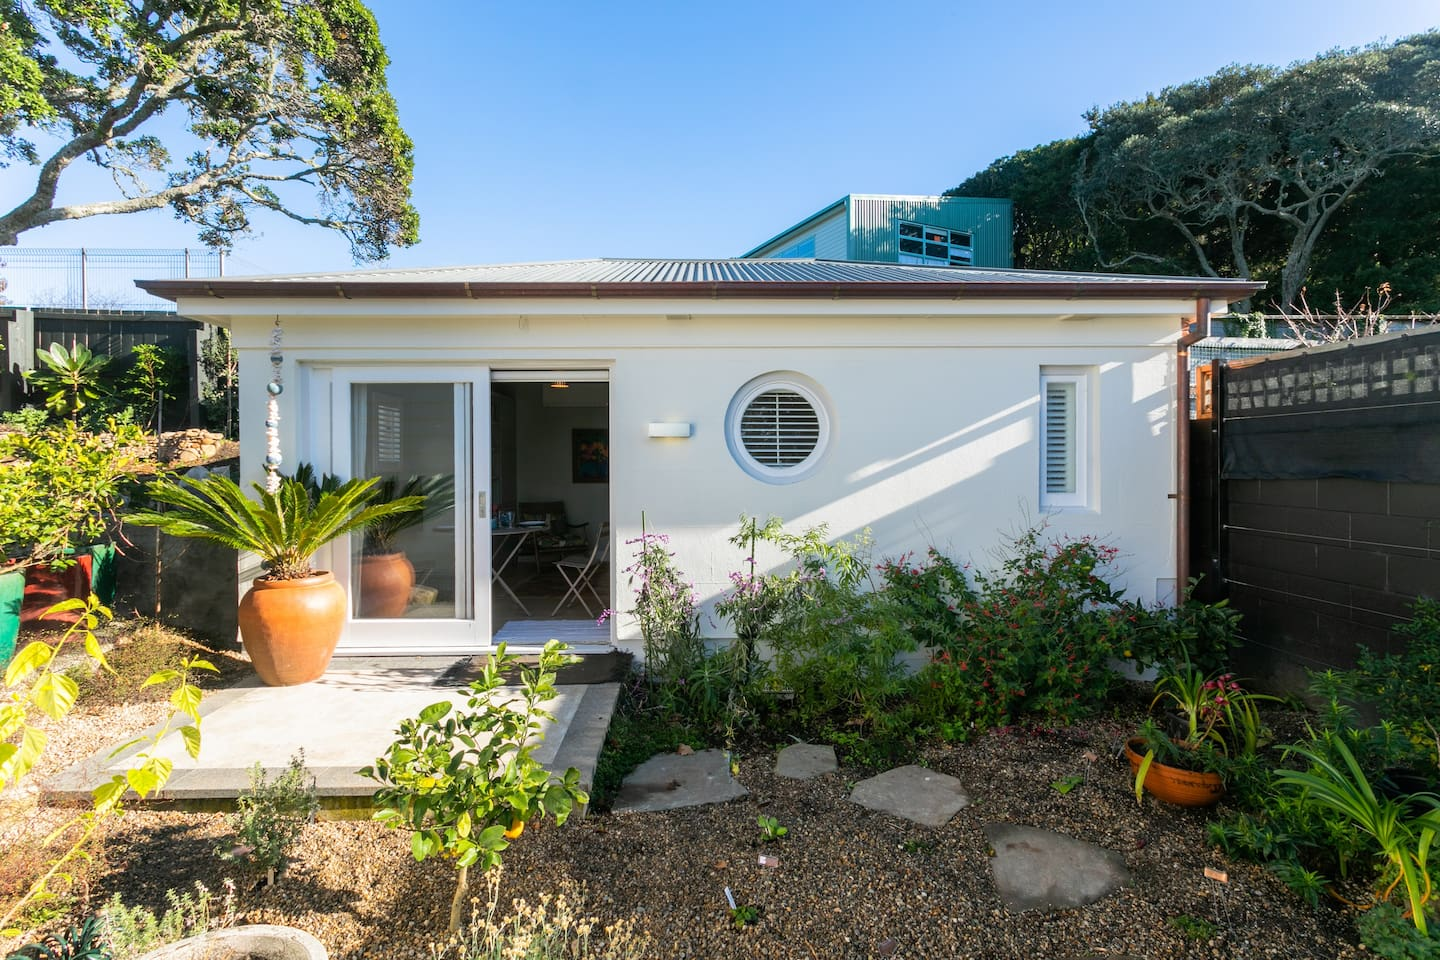 This is a lovely garden space. With a private garden courtyard. The cottage is 3-minutes walk from Devonport township. A further 4 minutes will take you to the wharf and ferry to access Auckland City and the islands of the Hauraki Gulf.